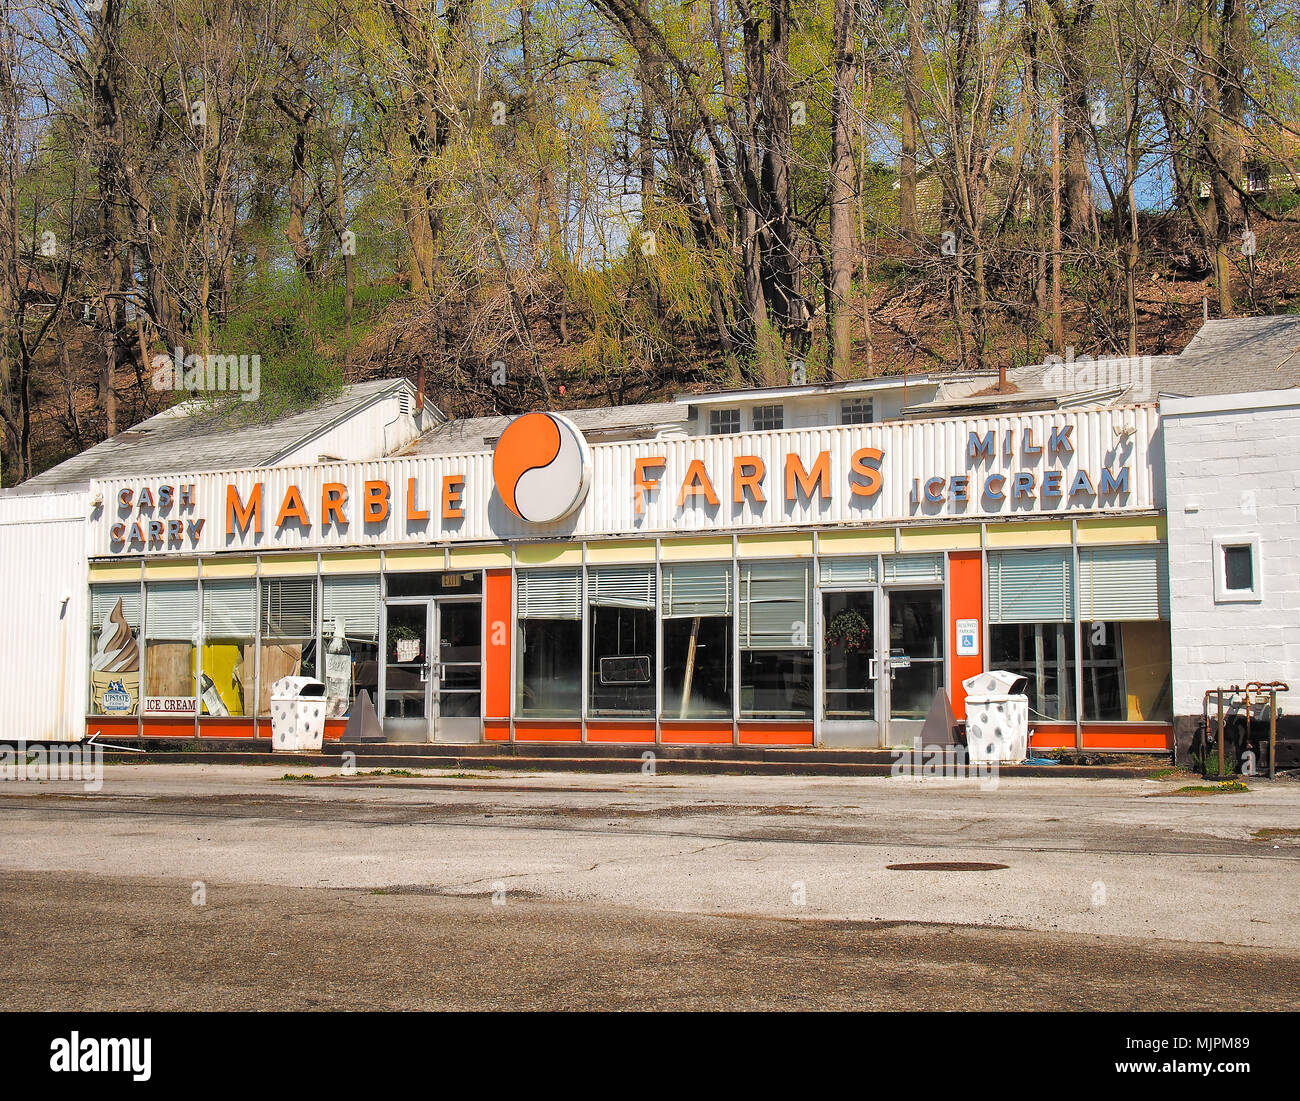 Syracuse, New York, USA. May 5, 2018. Marble Farms , a popular cash and carry and ice cream shop for over 75 years ,closed in the 1990's , but remains - Stock Image